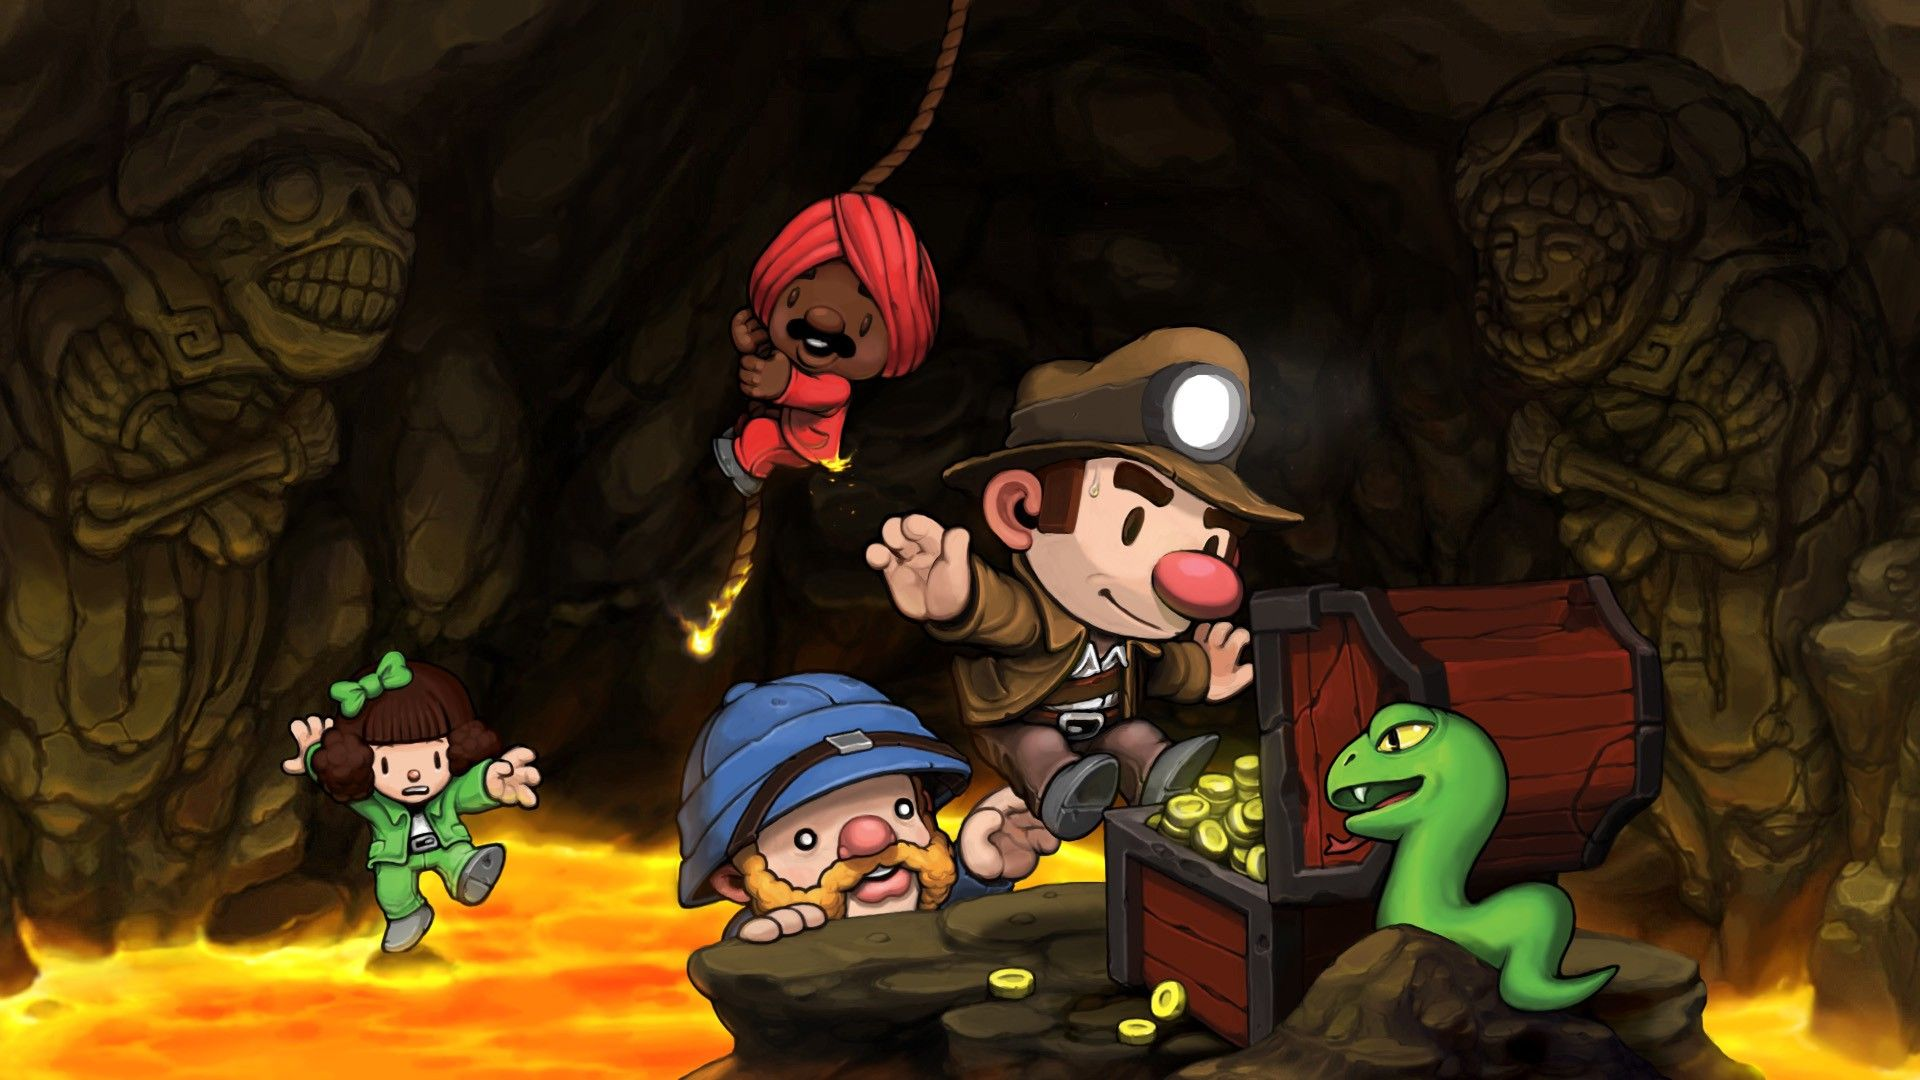 Spelunky Game Review 2019 Ps4 games, Game store, Indie games